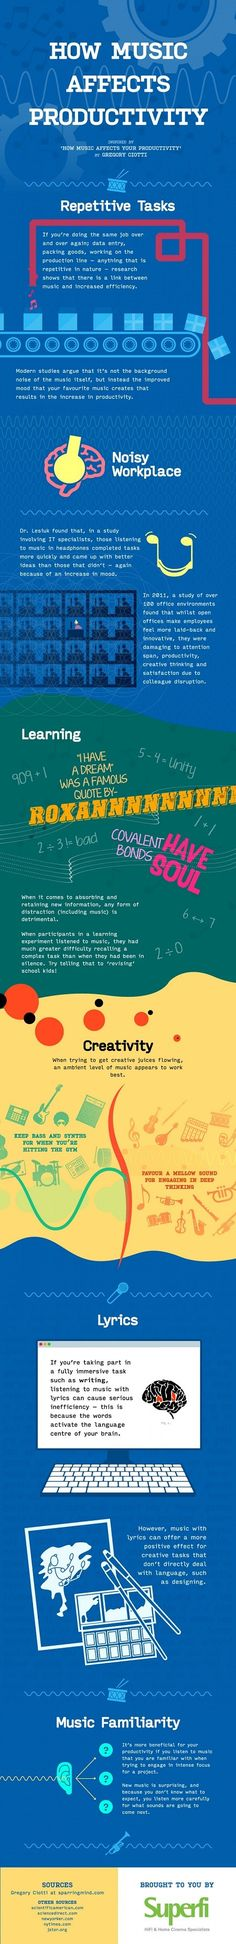 150613-how-music-affects-productivity-infographic-preview